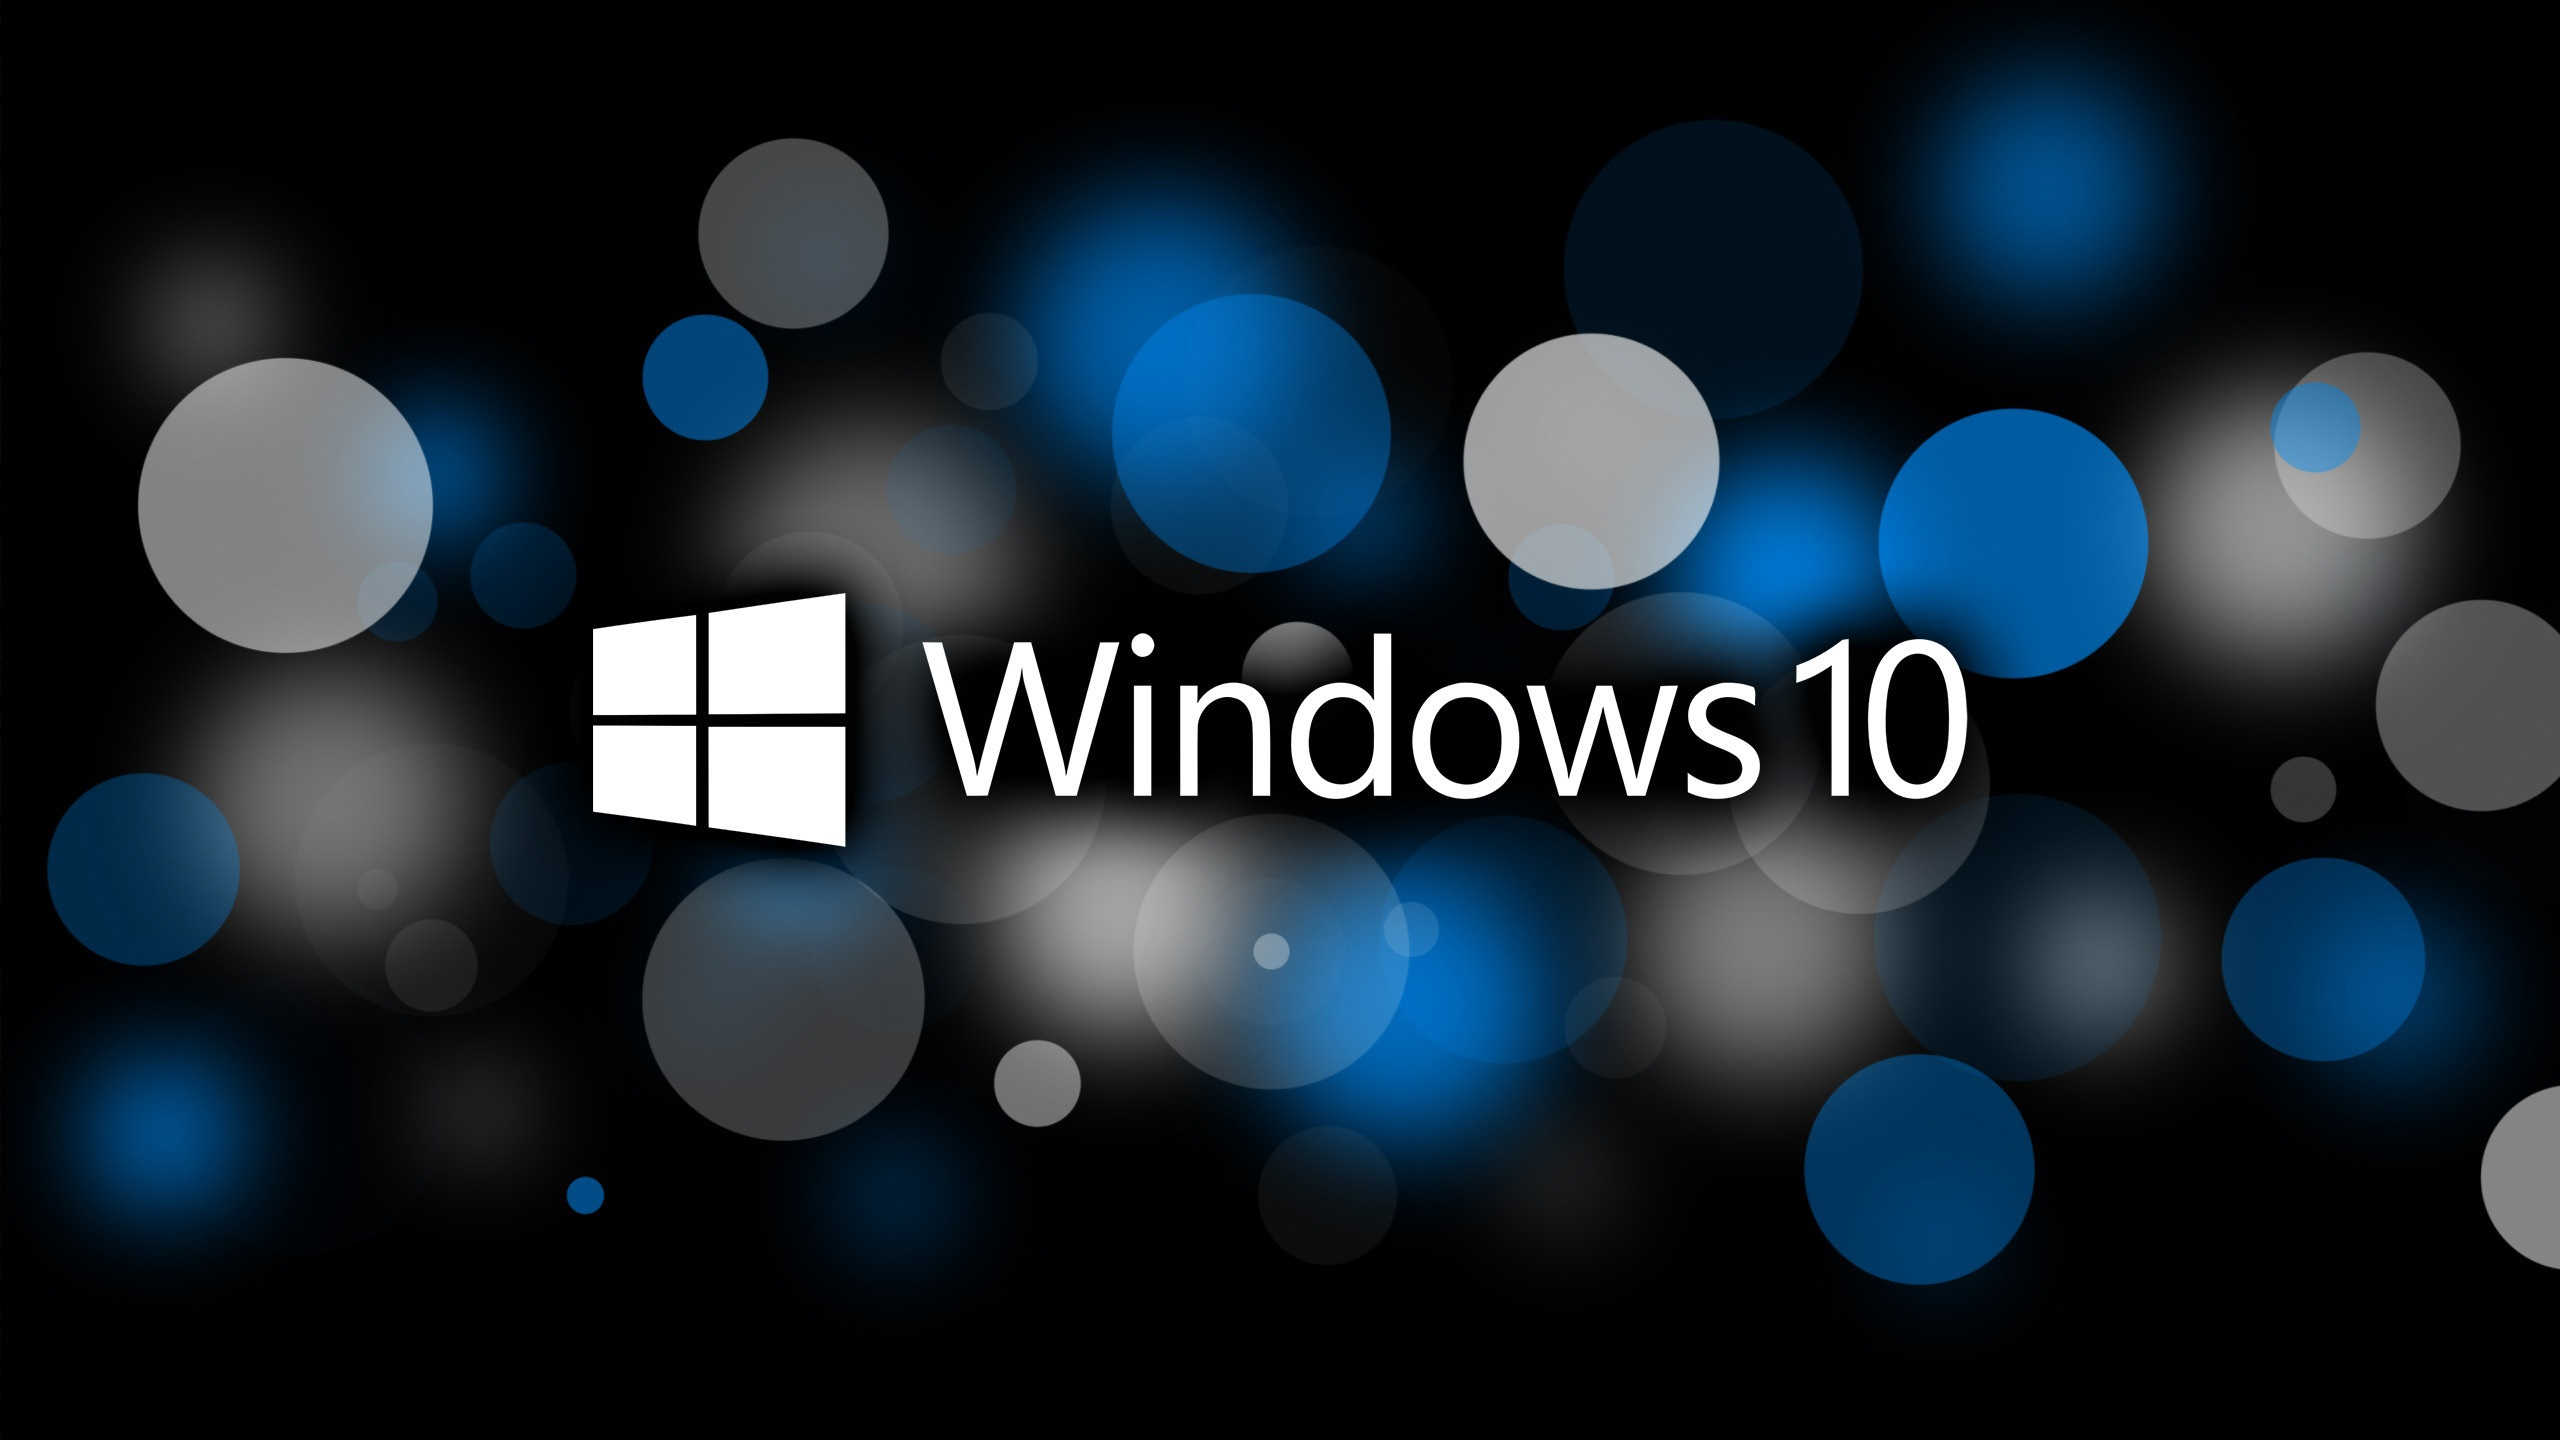 Microsoft windows 10 system logo circles creative design for X window system architecture